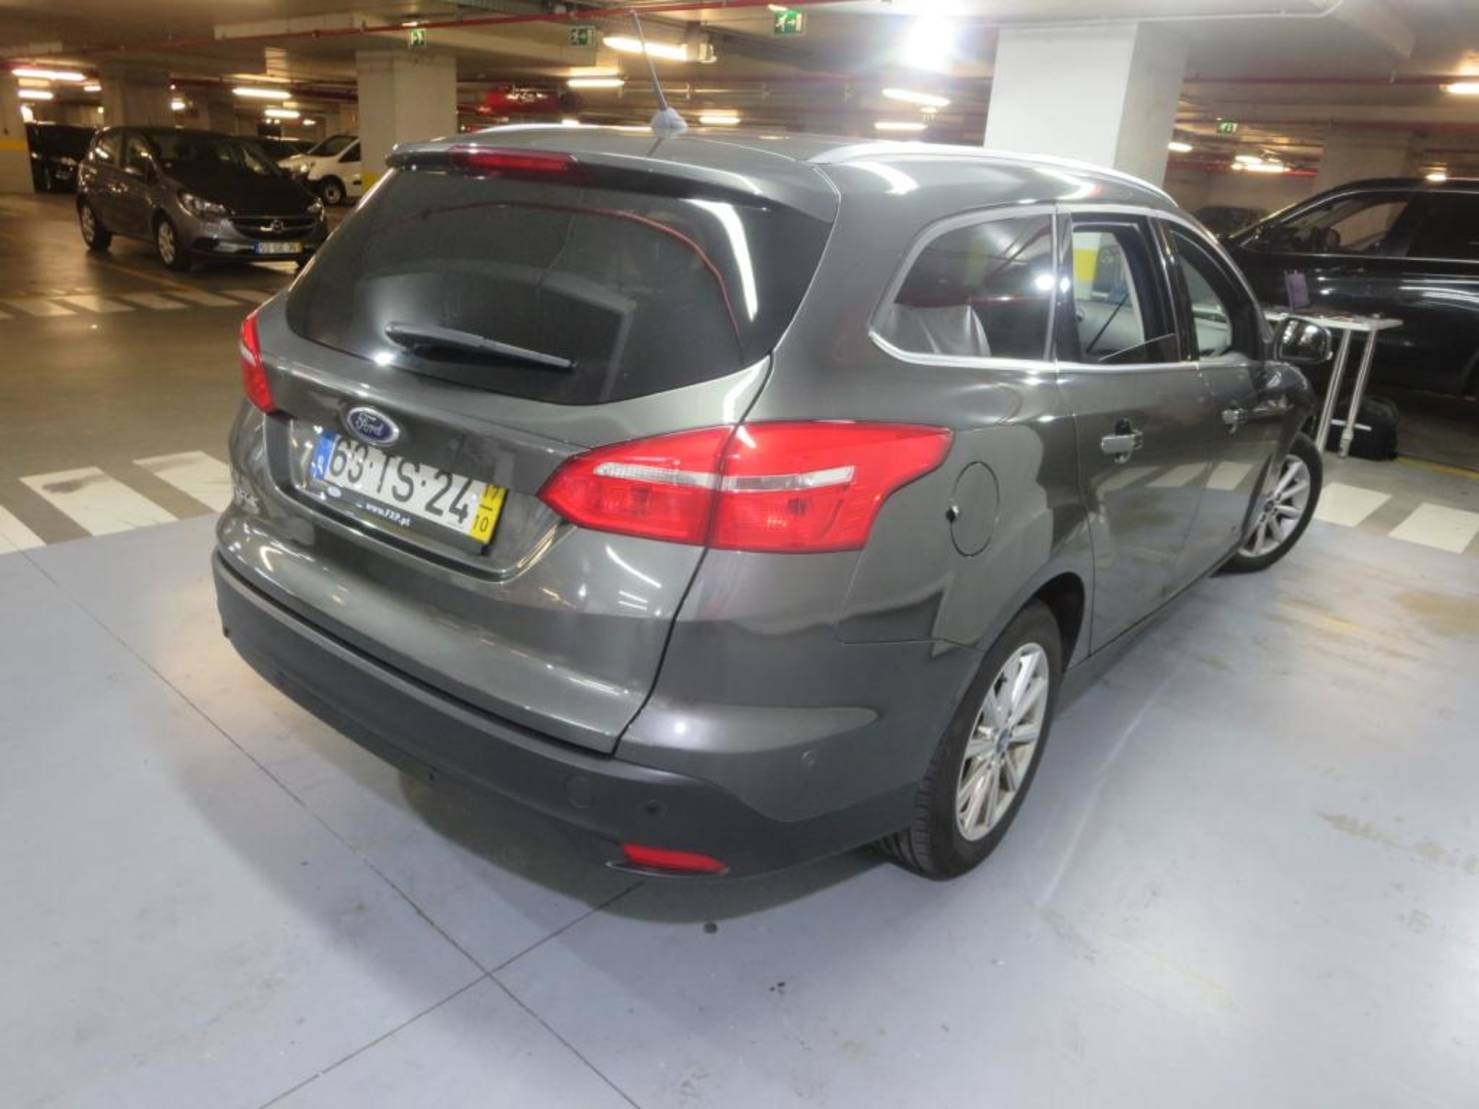 Ford Focus Turnier 1.5 TDCi DPF Start-Stopp-System, Titanium detail2